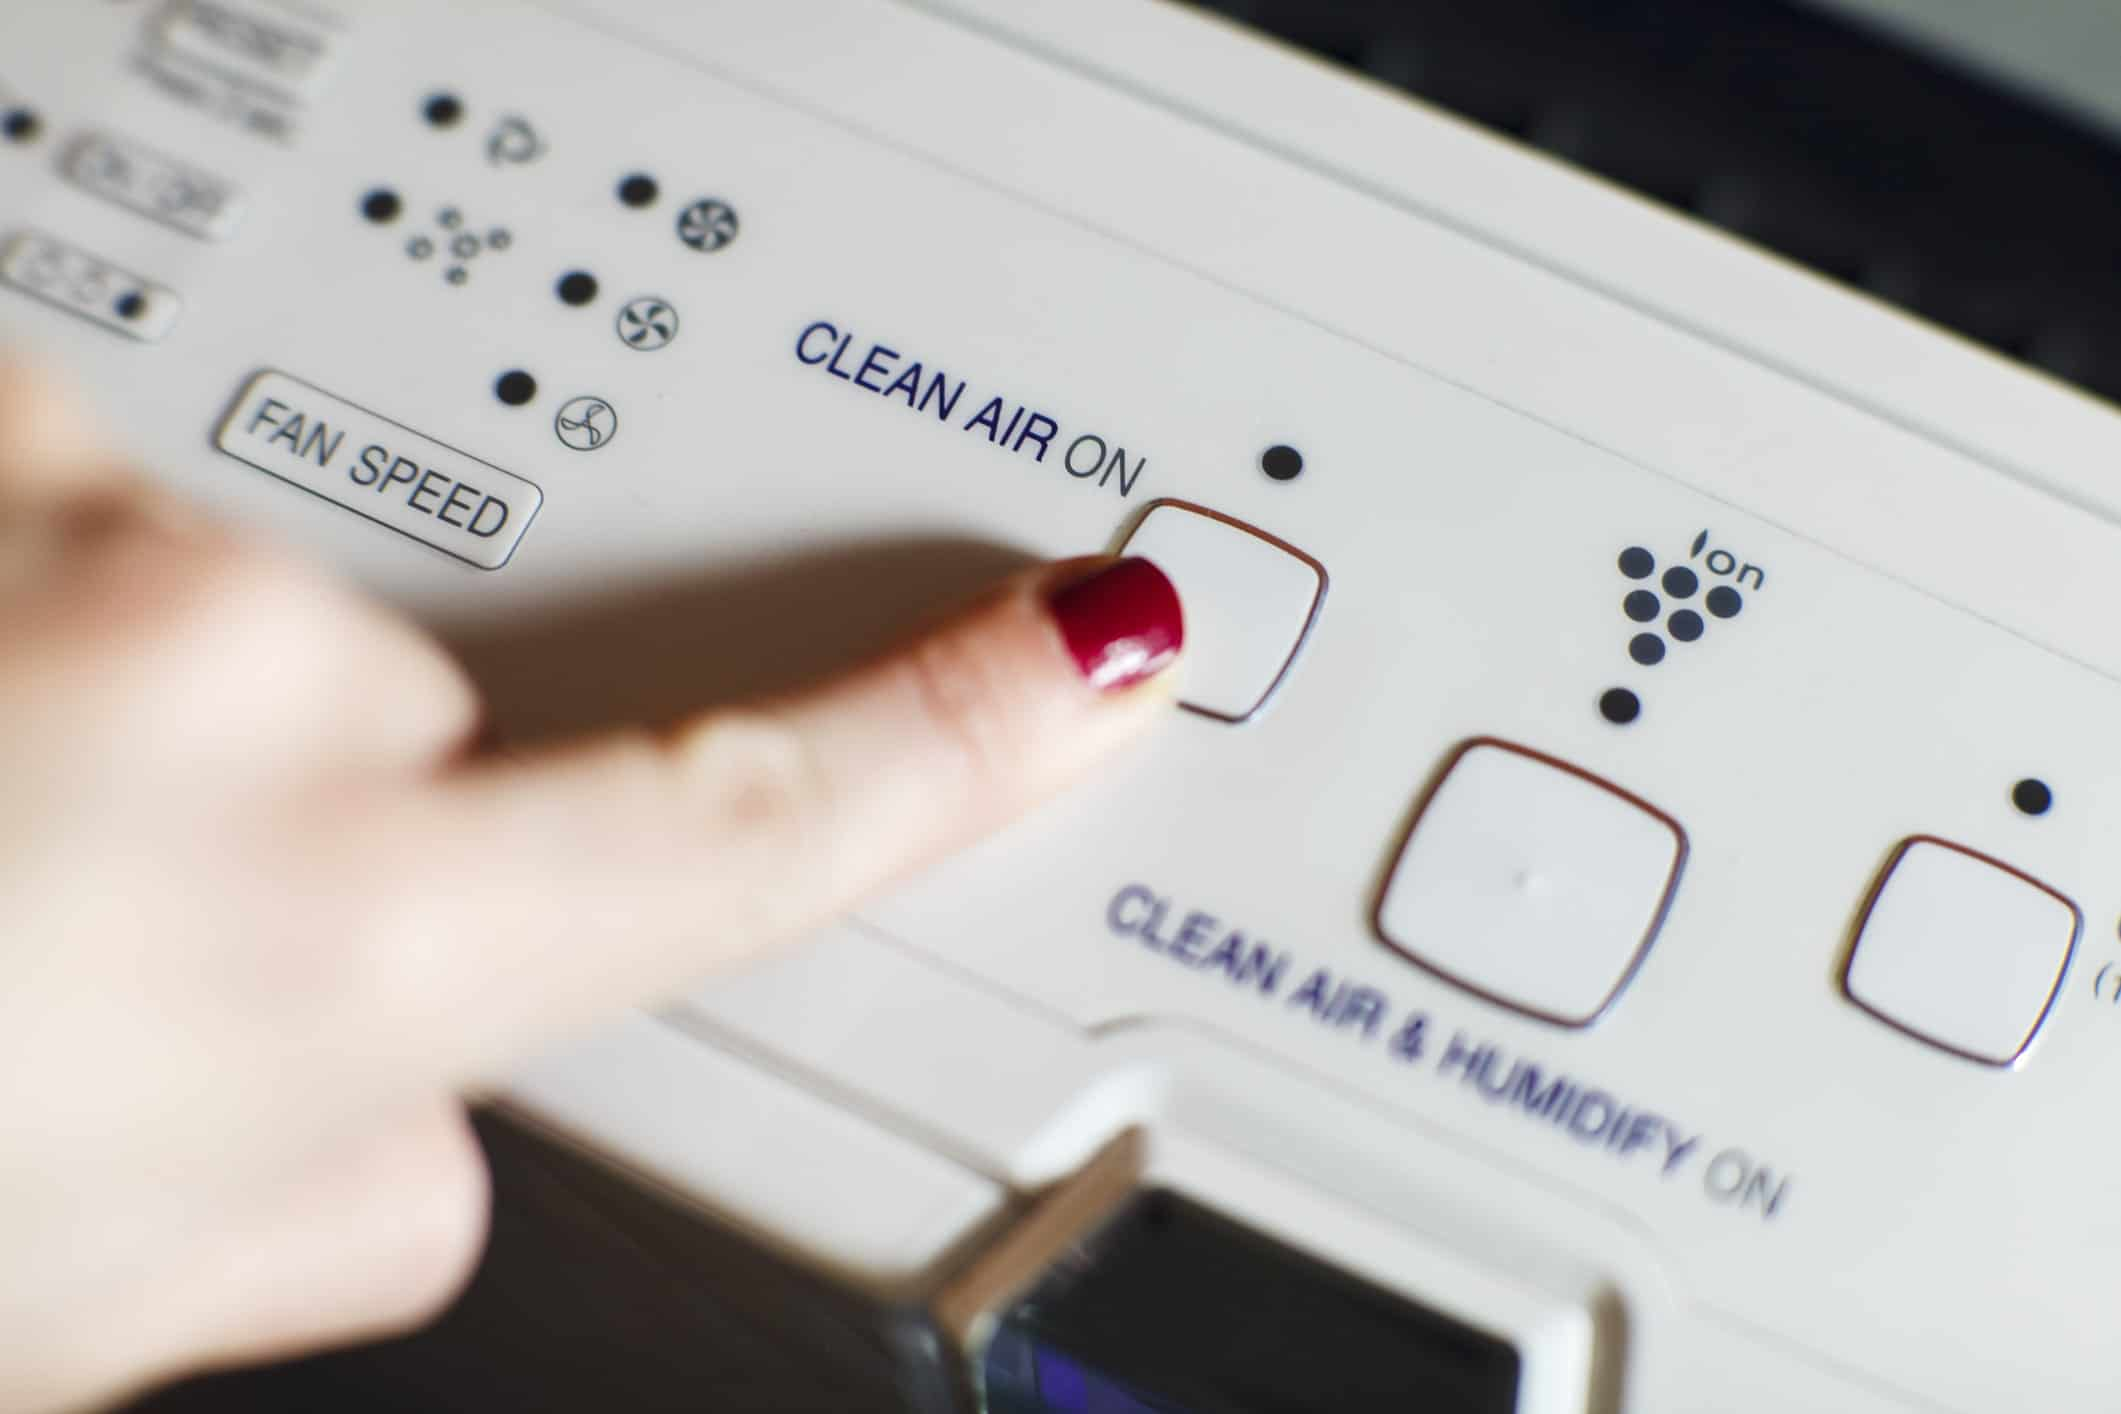 Ways to Know if Your Air Purifier is Broken